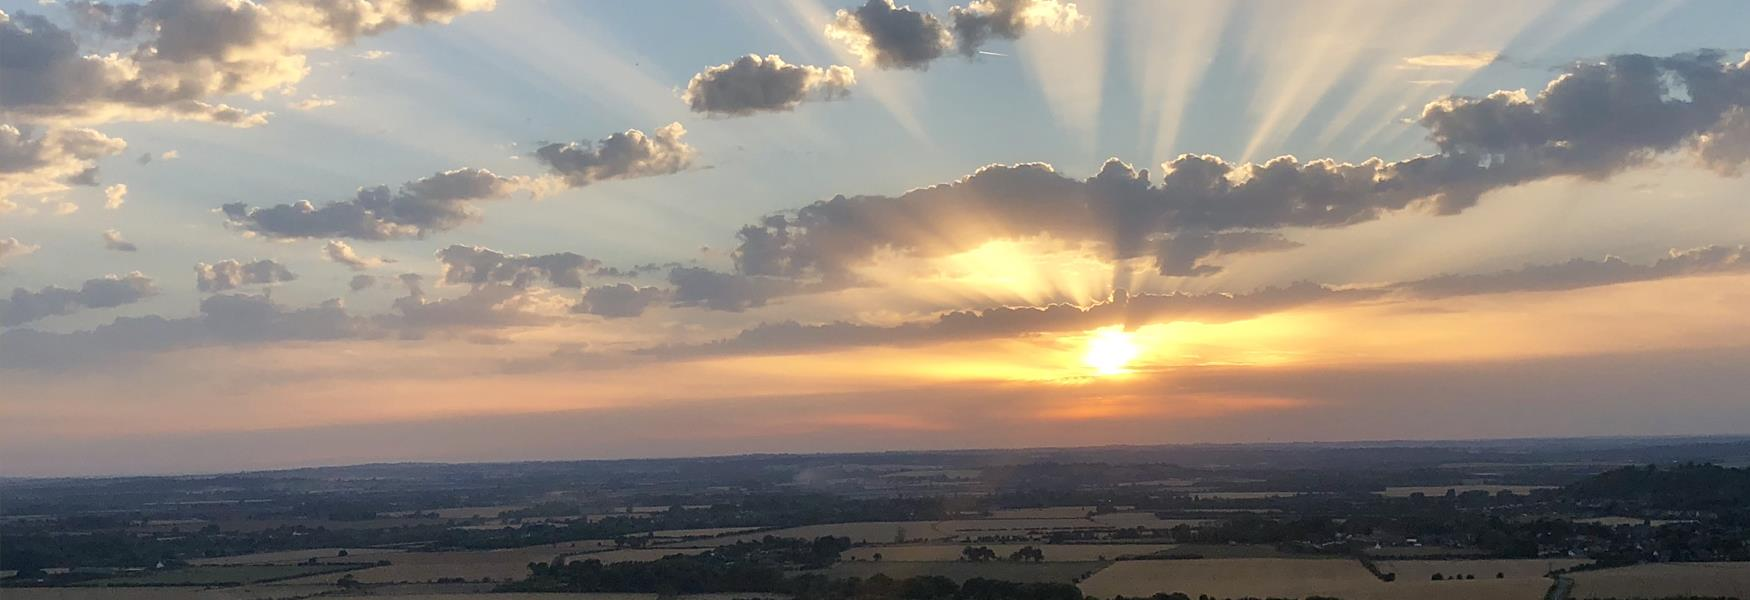 Dunstable Downs by Alexis Horam